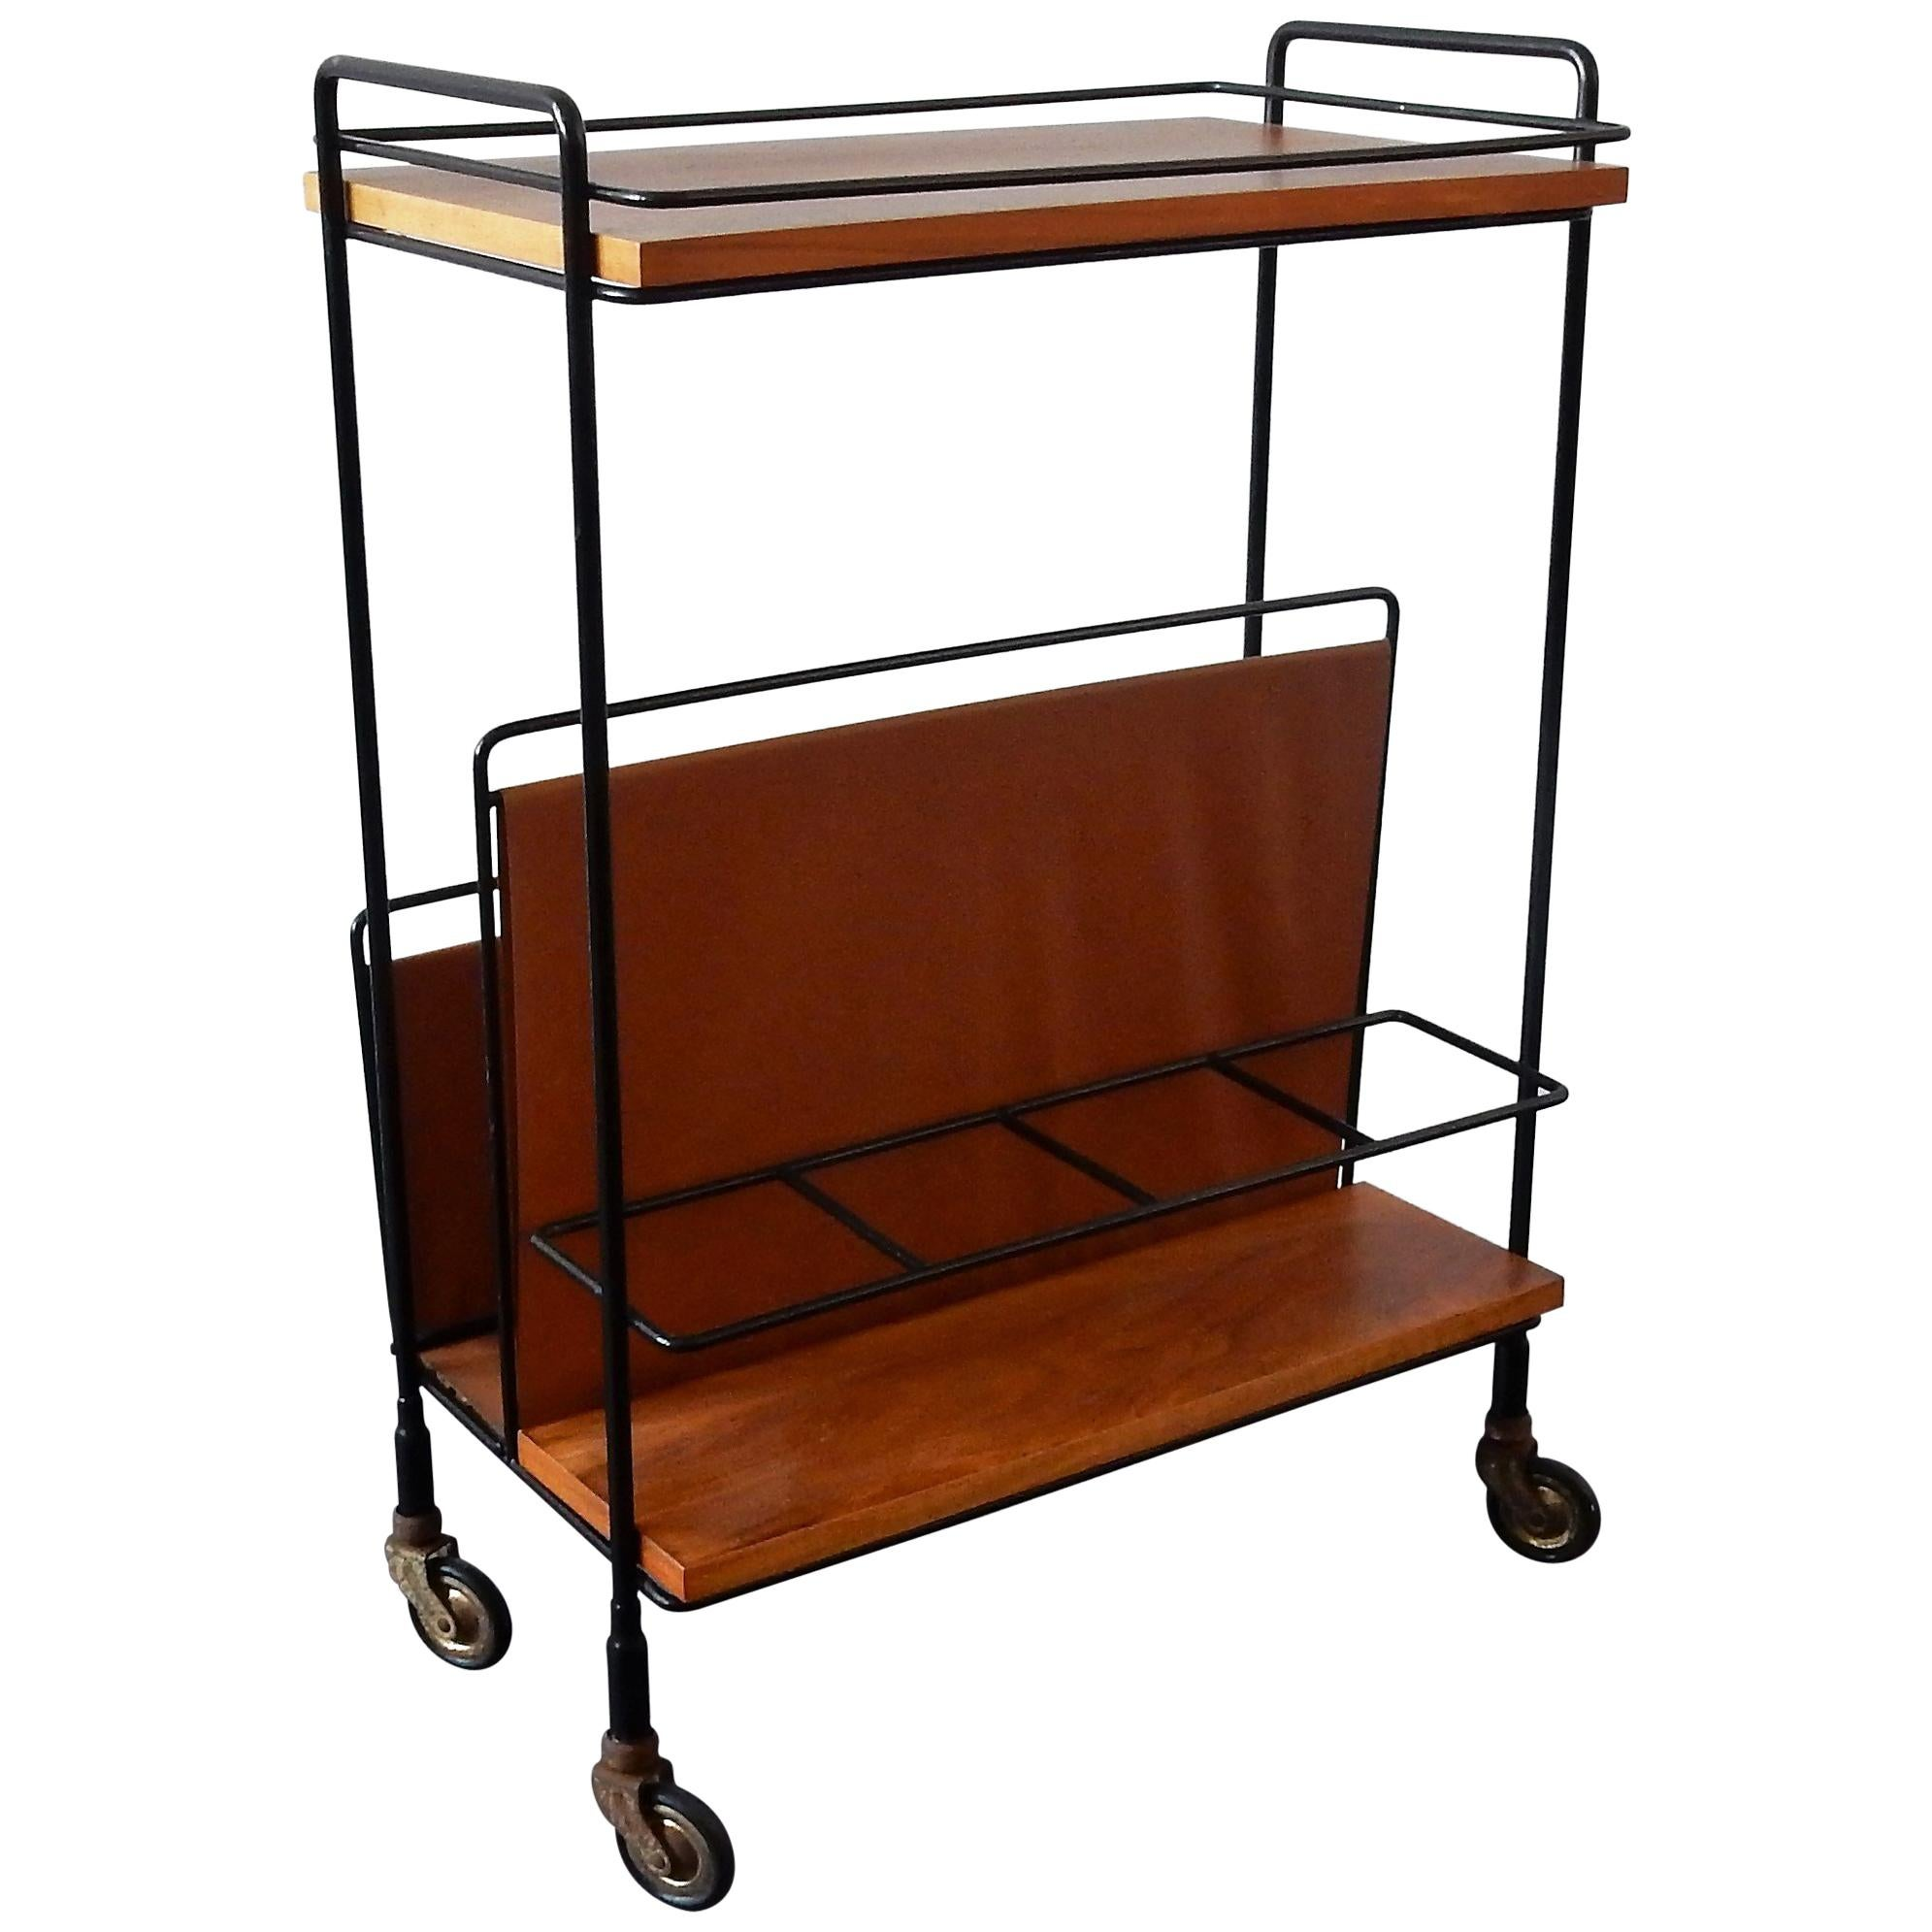 A Frame Trolley Vintage Bar Cart Or Serving Trolley With Magazine Rack 1960s